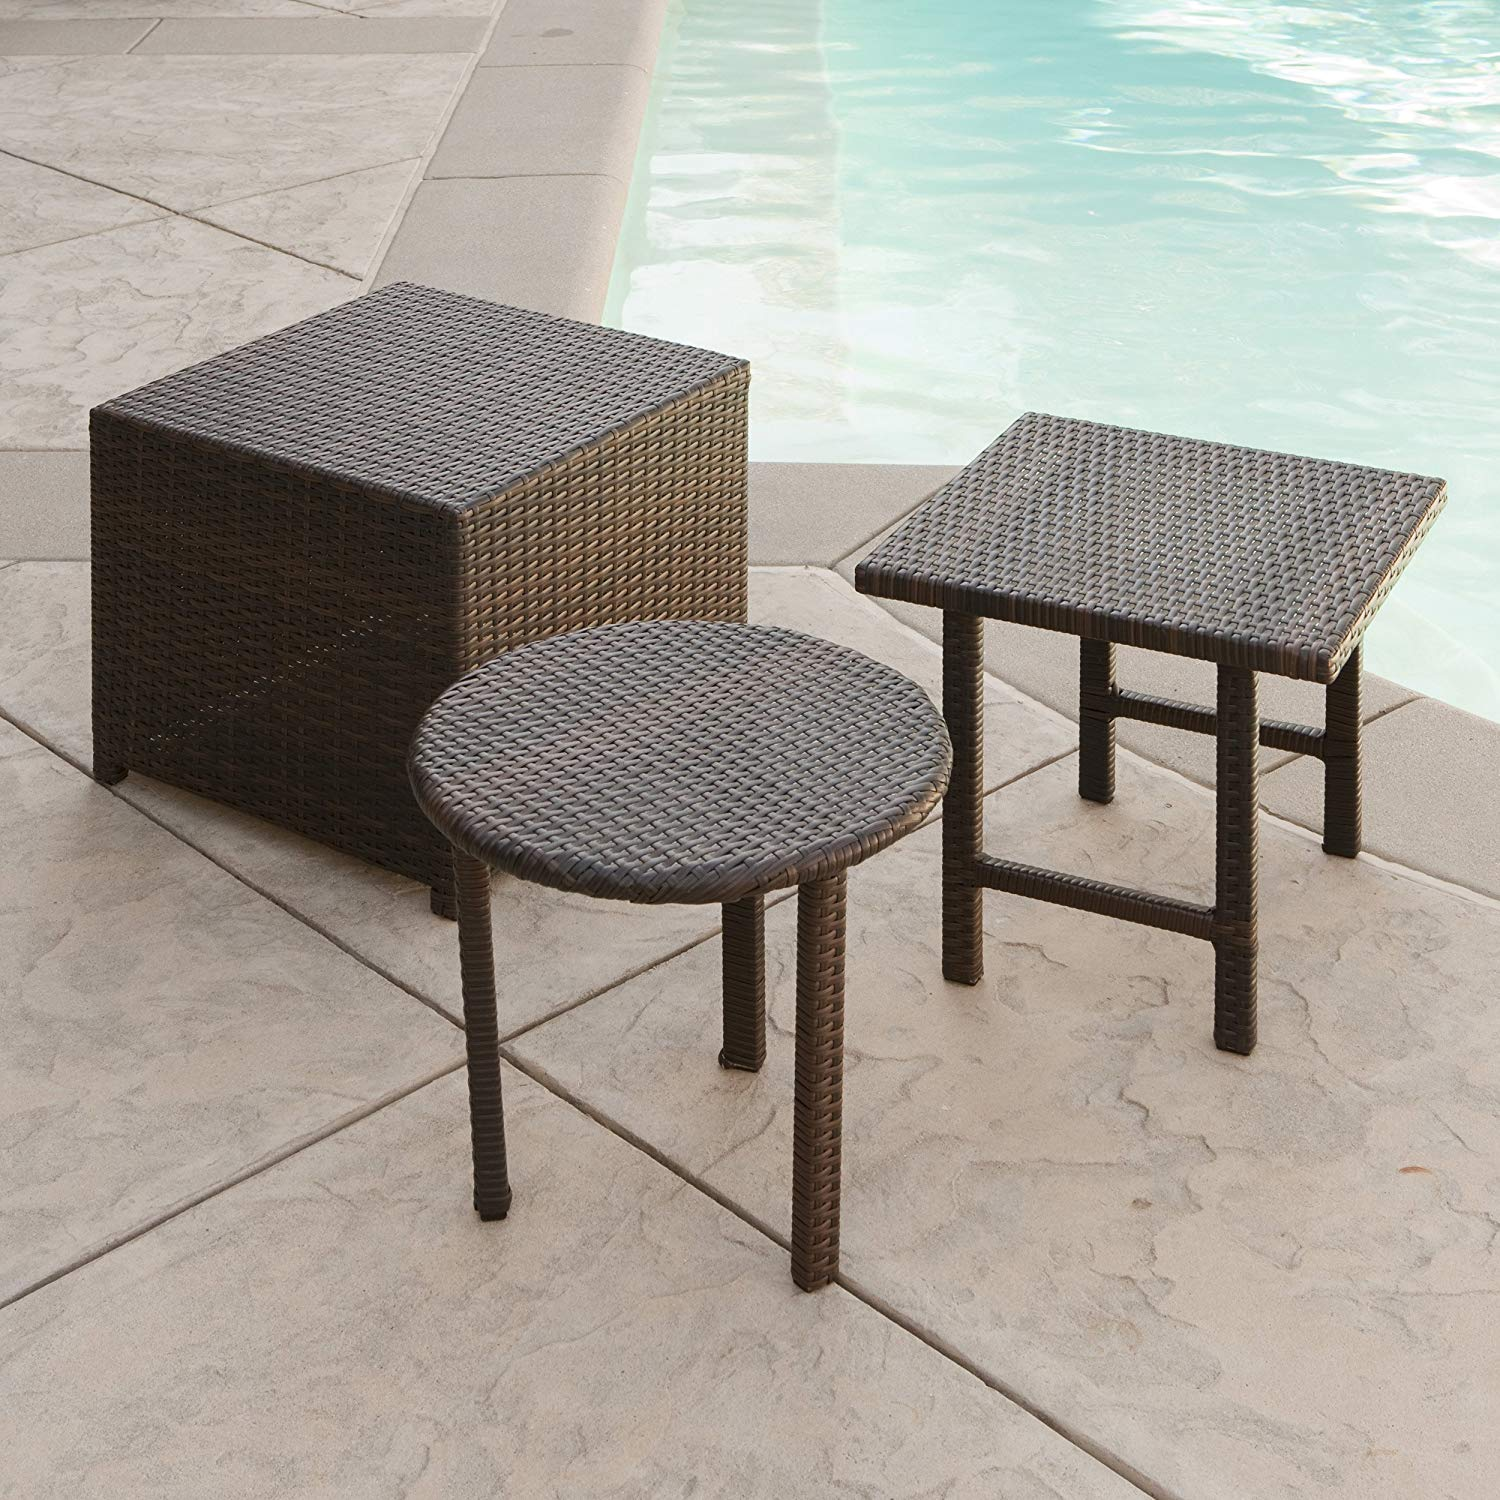 best selling palmilla wicker table set multibrown outdoor accent patio side tables garden lamps with usb and half moon foyer living room accessories ideas contemporary furniture